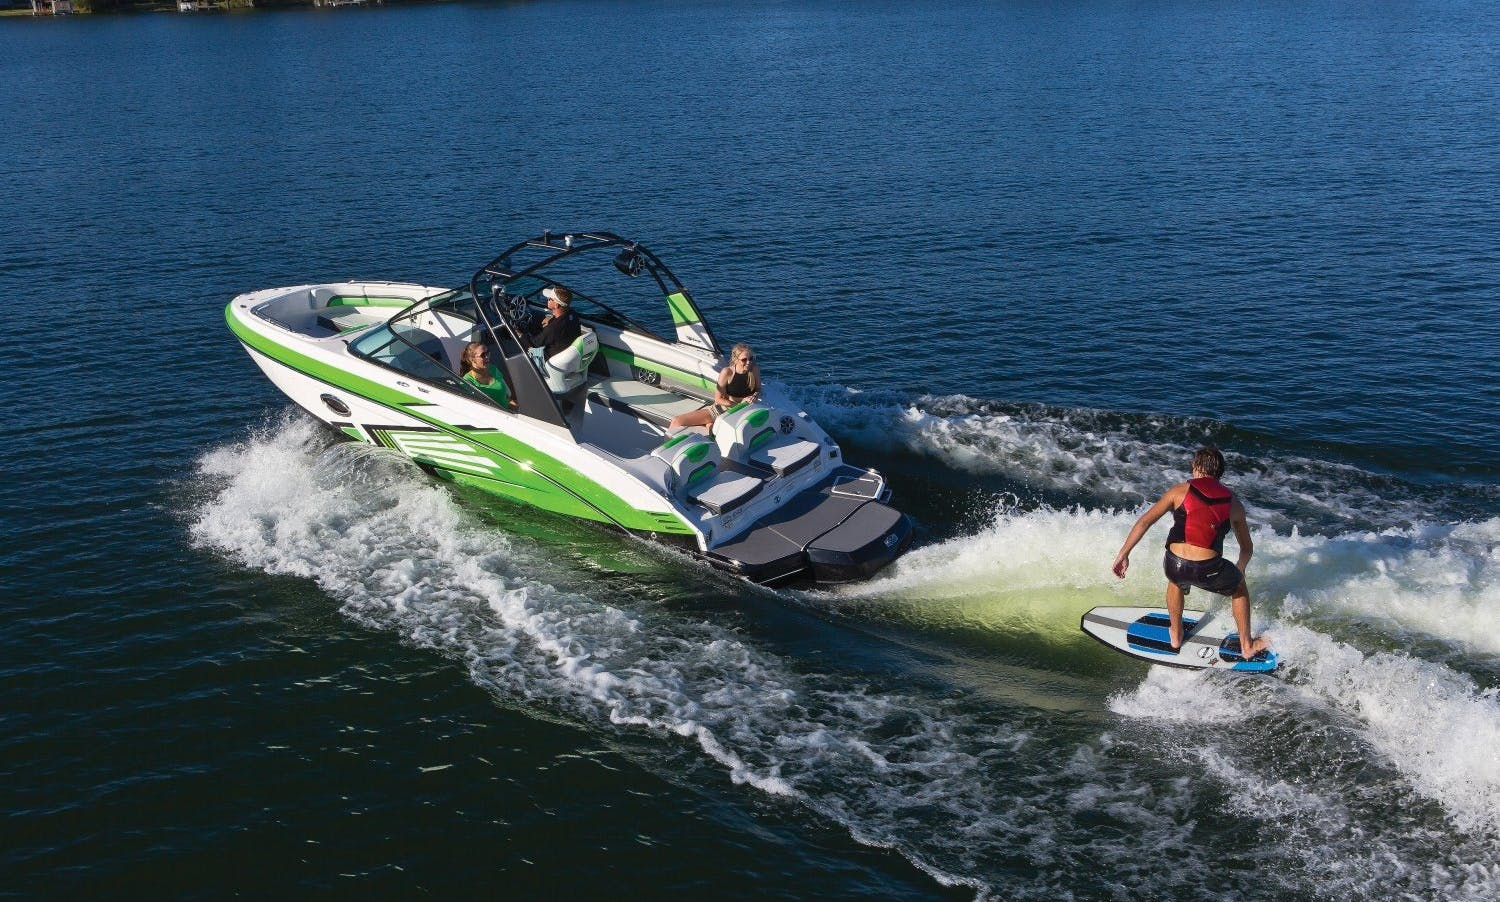 Stylish 2017 23' Twin Supercharged Jet Boat